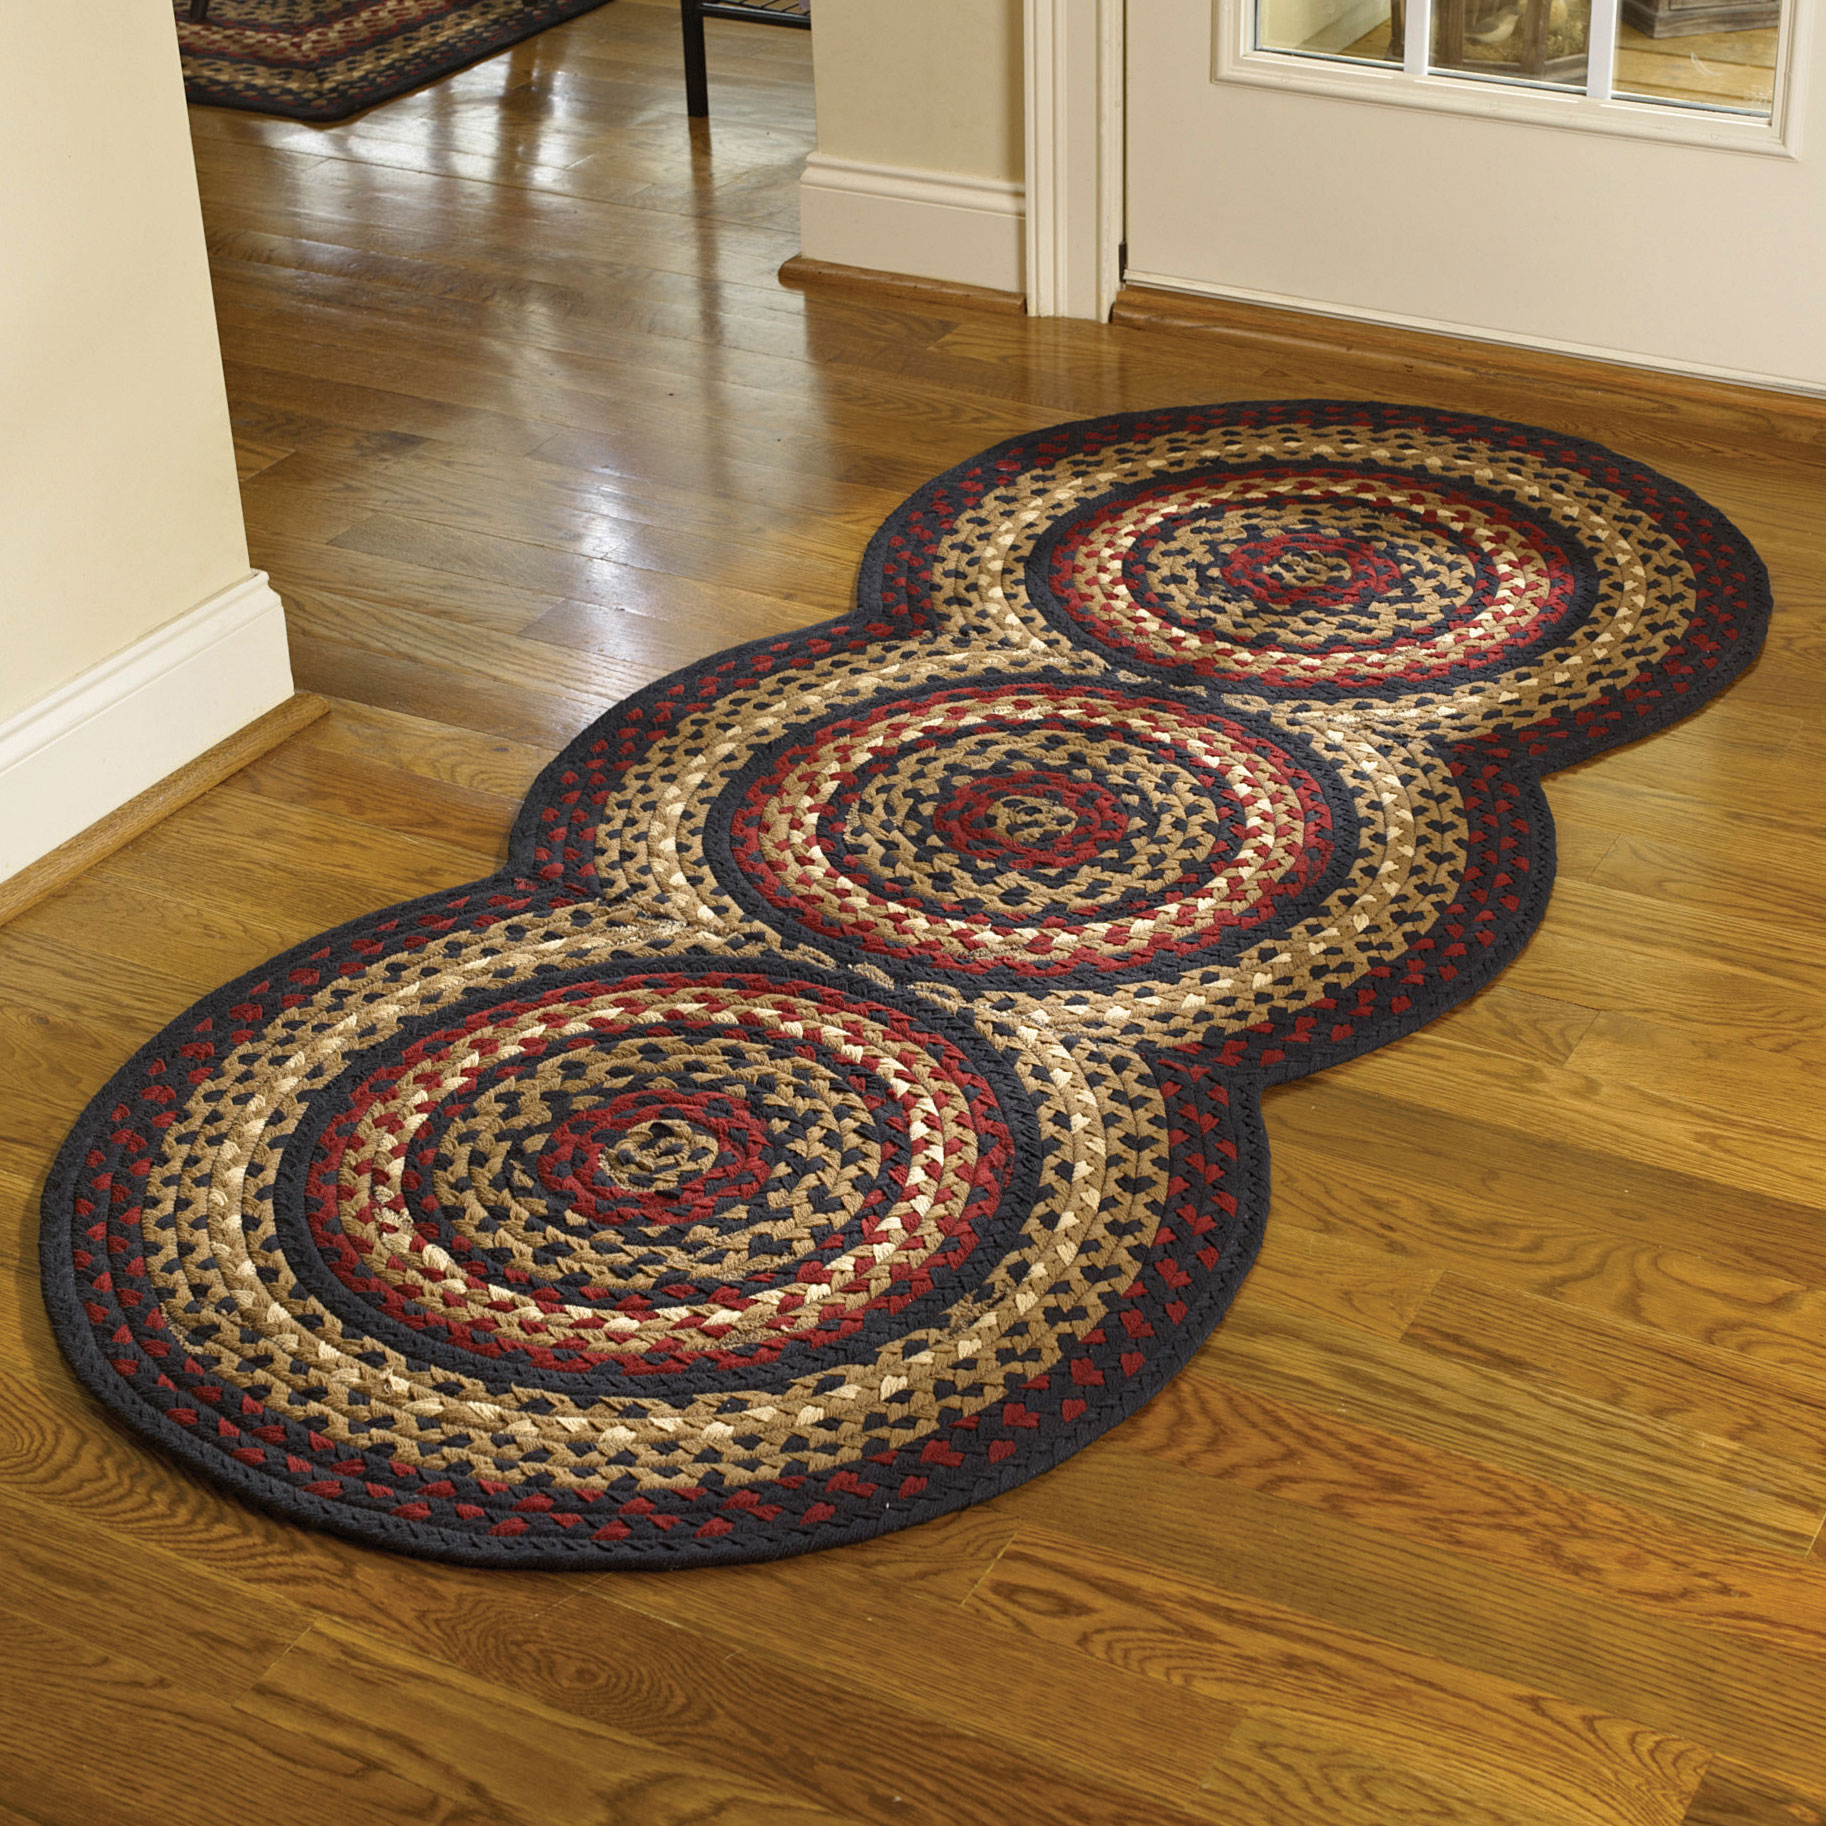 Country Park Designs Black Cotton Braided Area Rug Red Cream